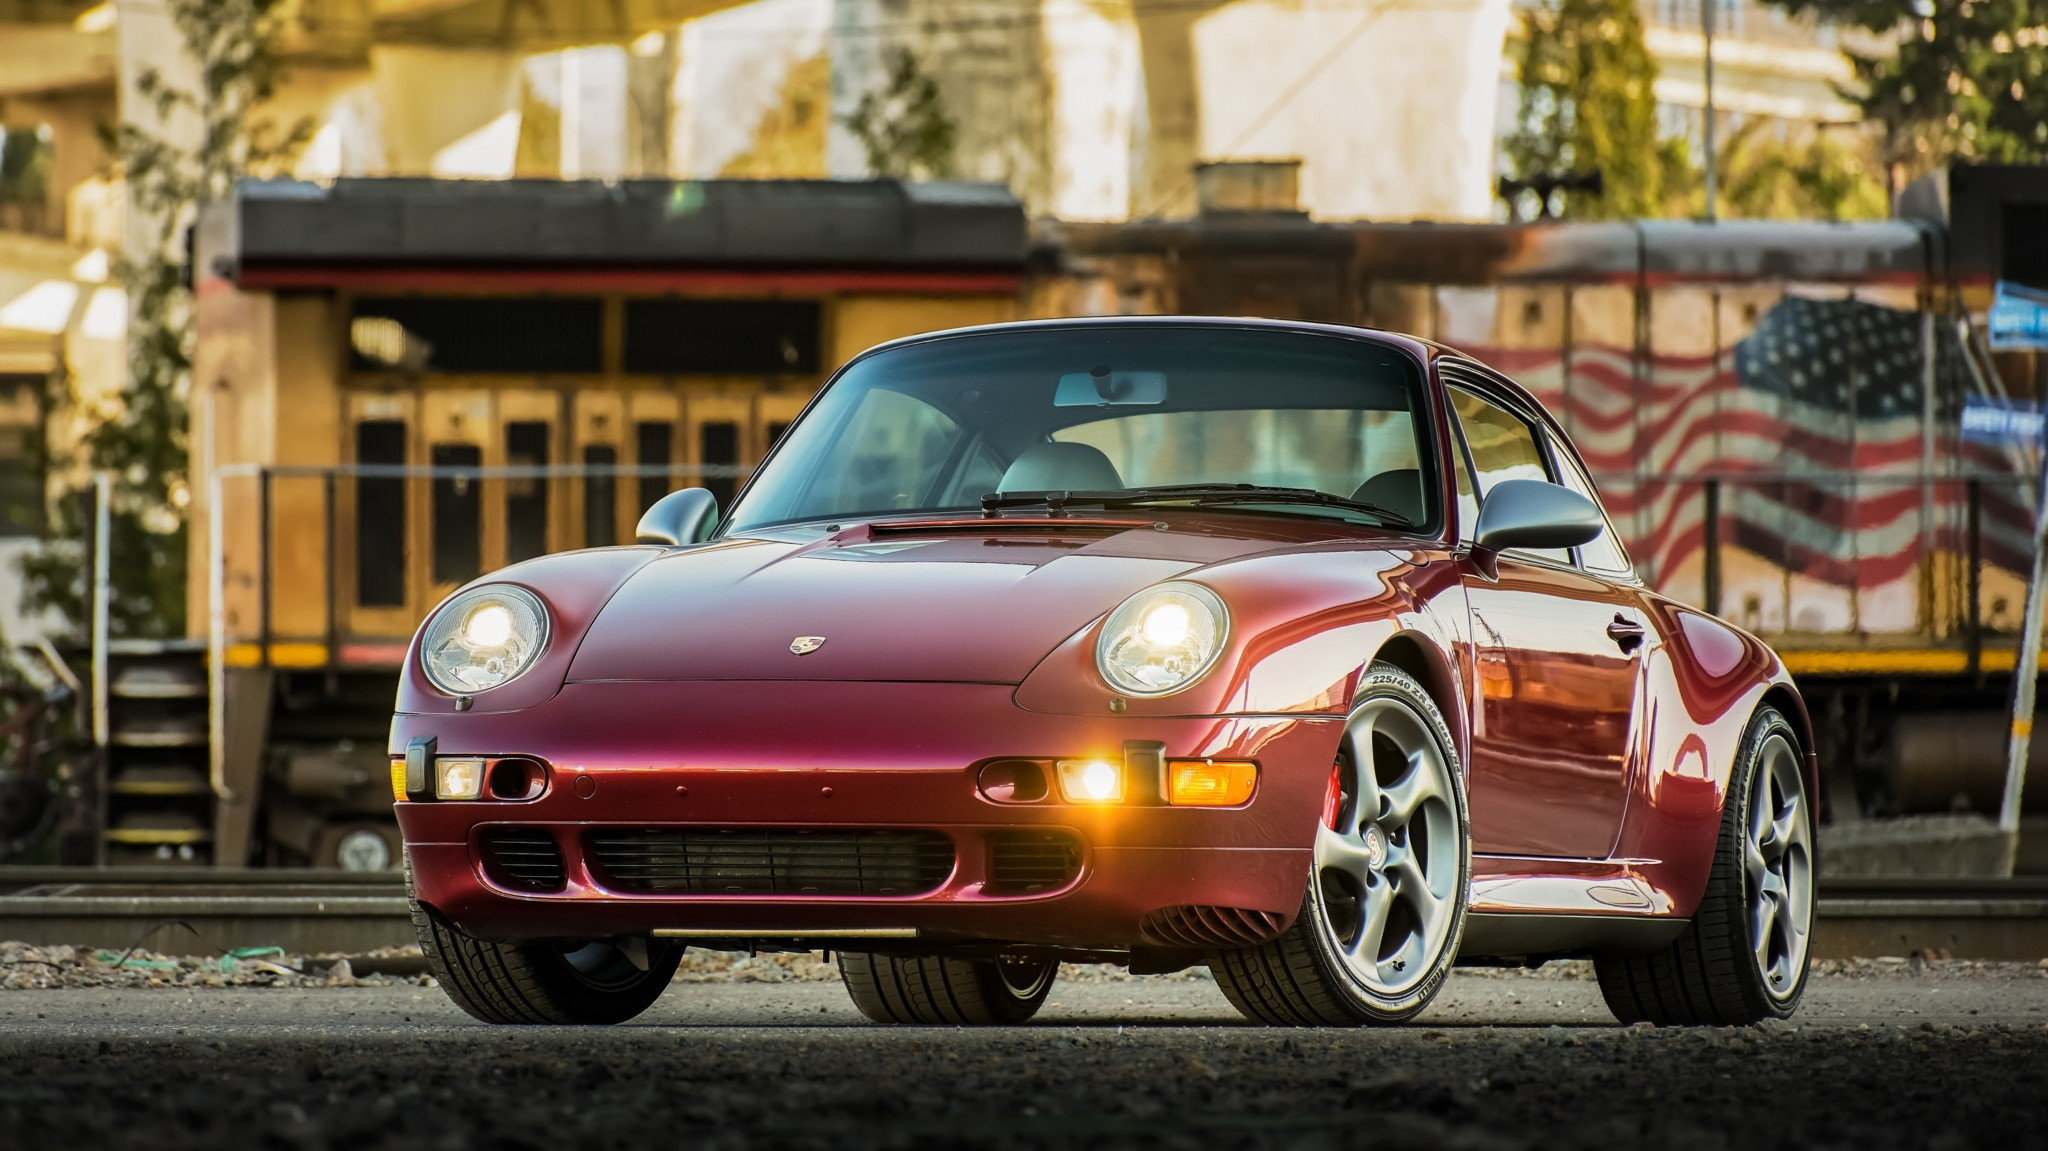 Picture Perfect 993 Carrera 4S Was Dealer's Ride of Choice